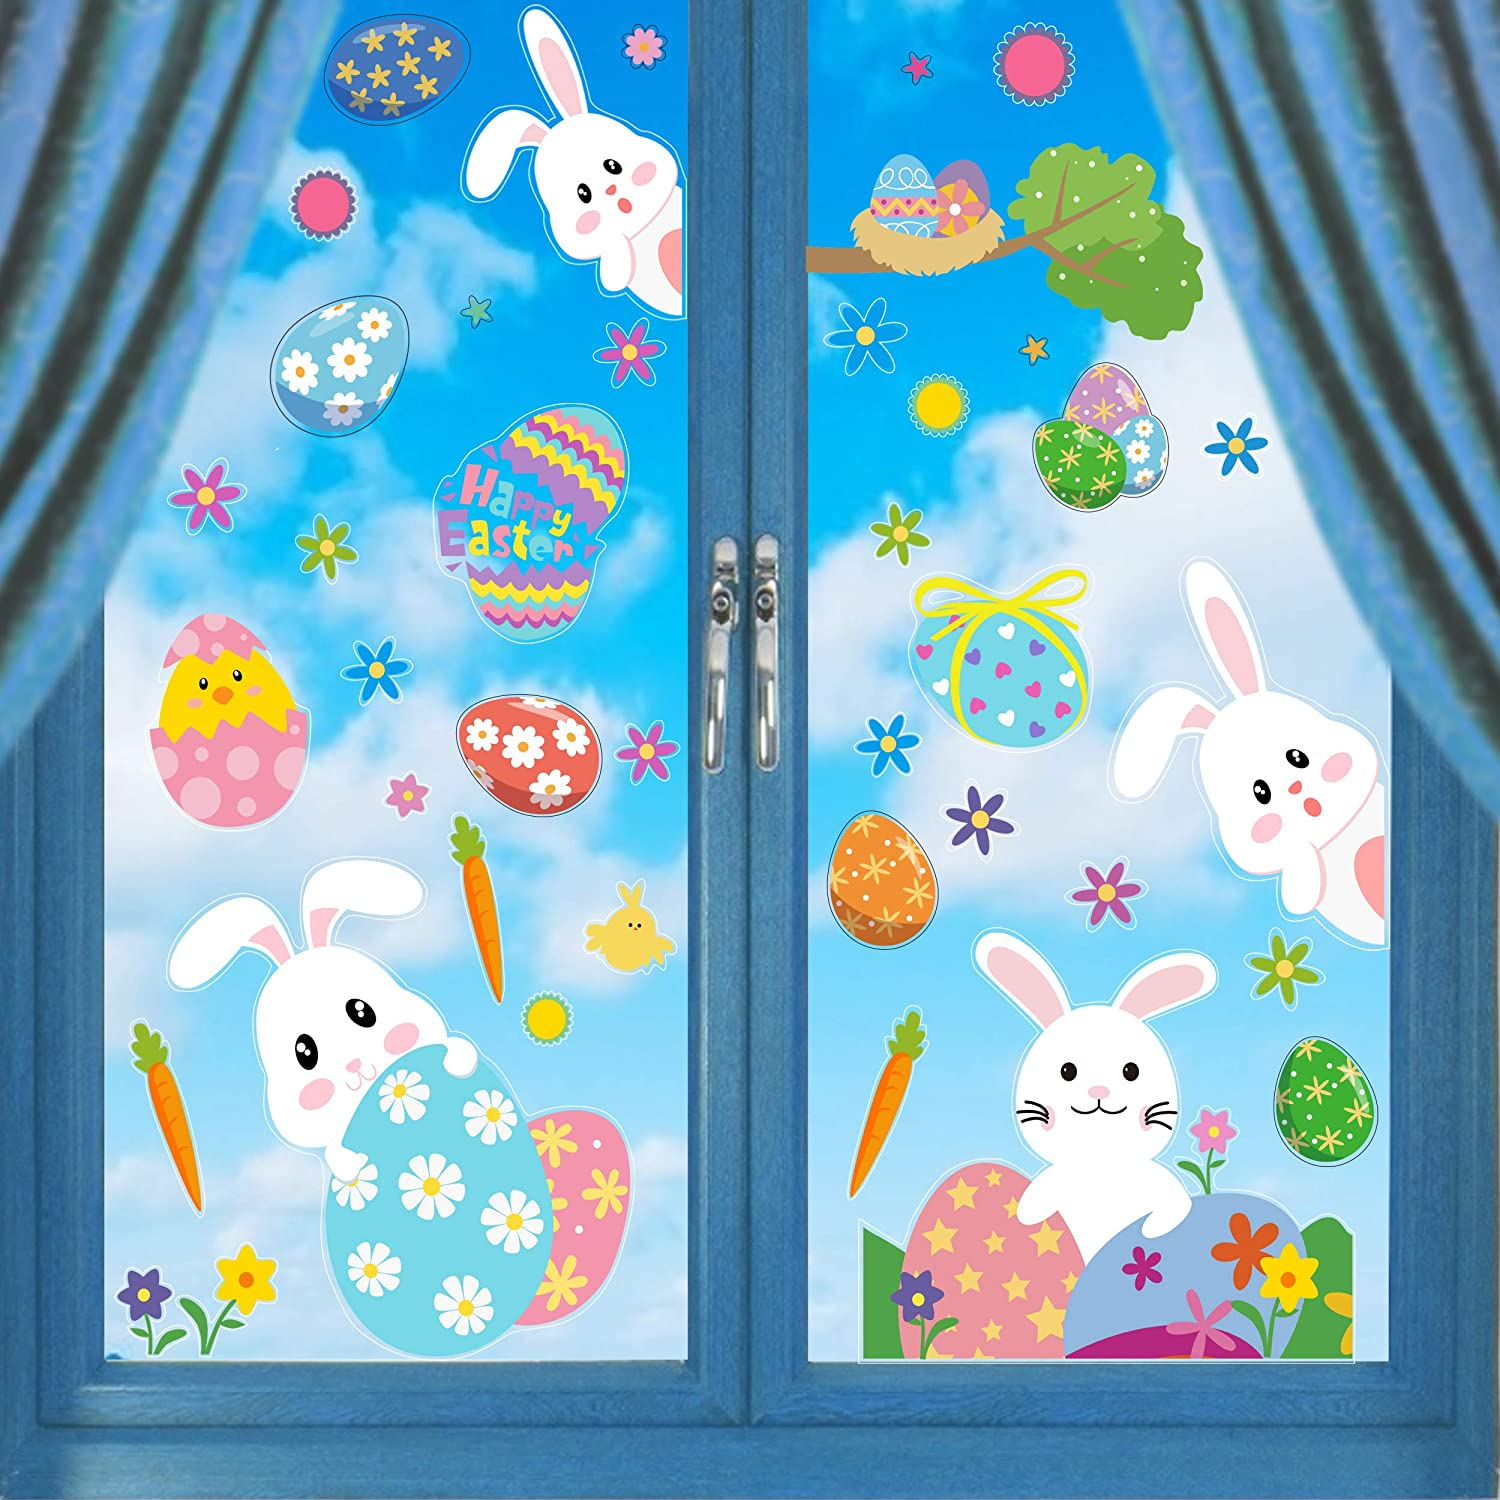 Kitchen Decoration Easter 2019 Easter Decoration Idea Window Decals Carrots Window Stickers Easter Carrot Reusable Window Clings